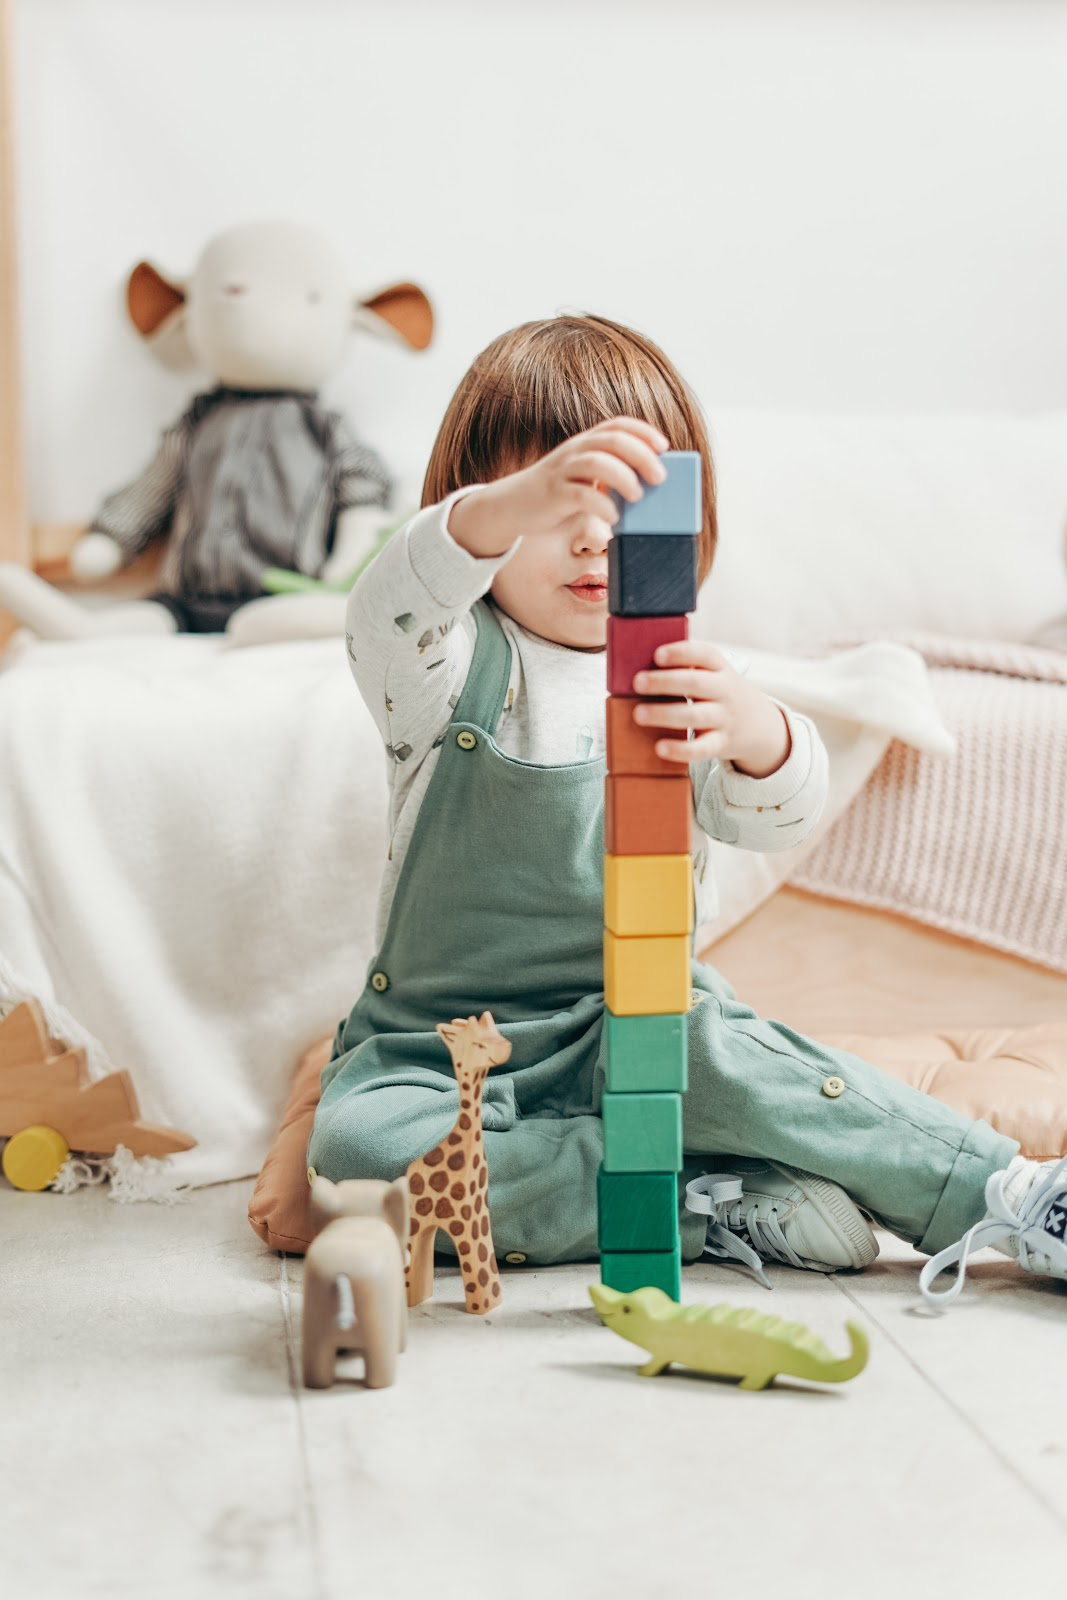 Educational Fun Activities for Kids, Child learning with games